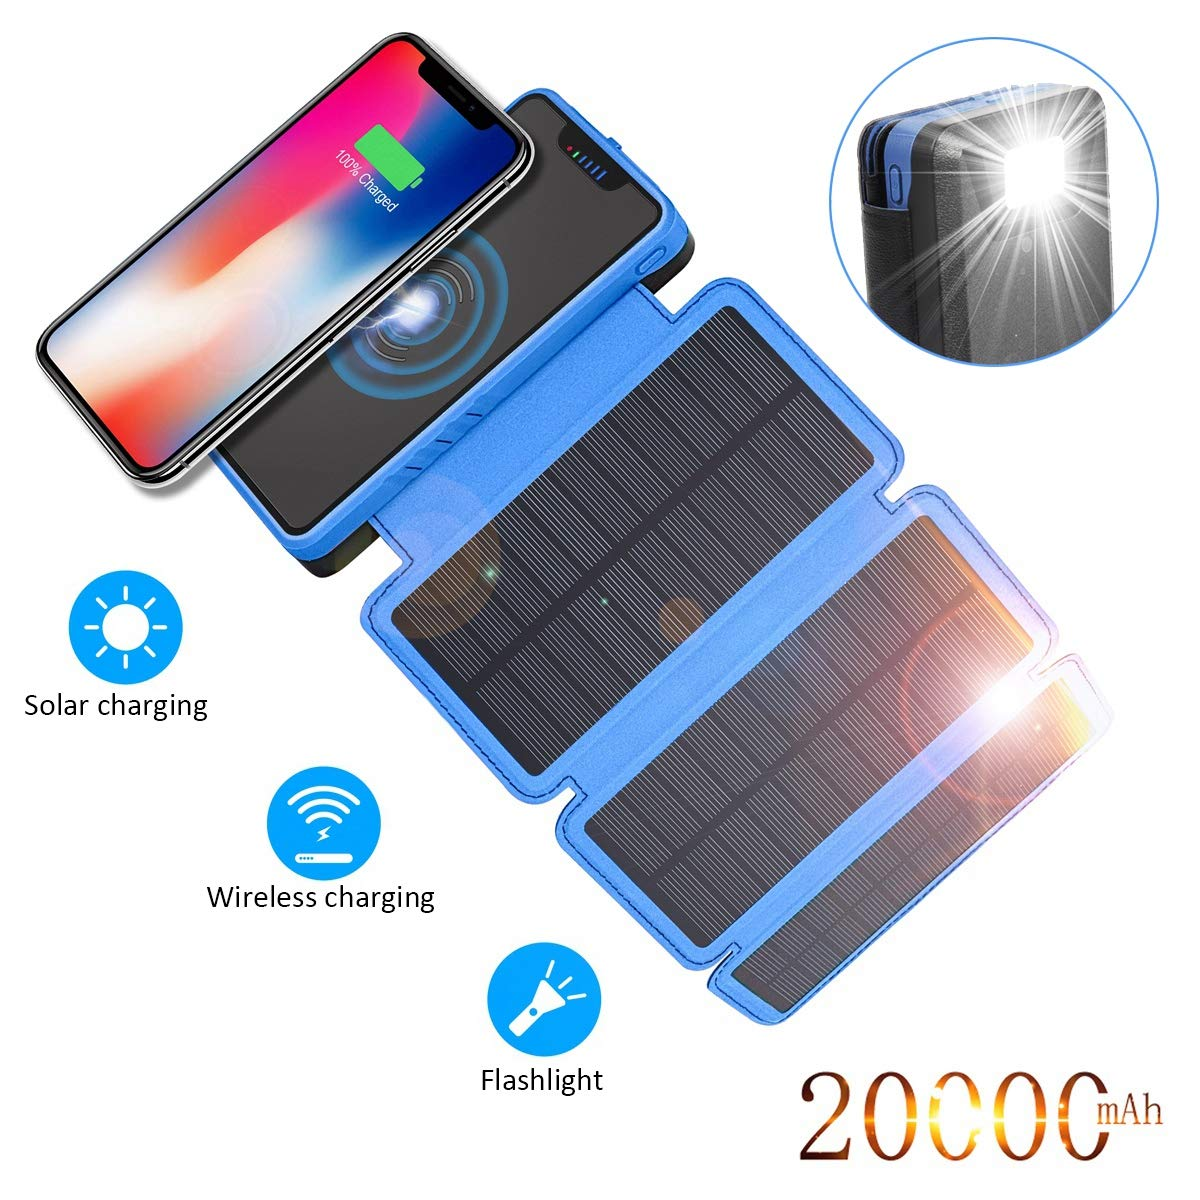 Solar Charger 20000mAh,Wireless Qi Power Bank Portable Solar Battery Charger with 3 Solar Panels Flashlight 5V 2.1A Dual Port Output Waterproof External Battery Pack for Outdoor Camping Travel by Zonhood